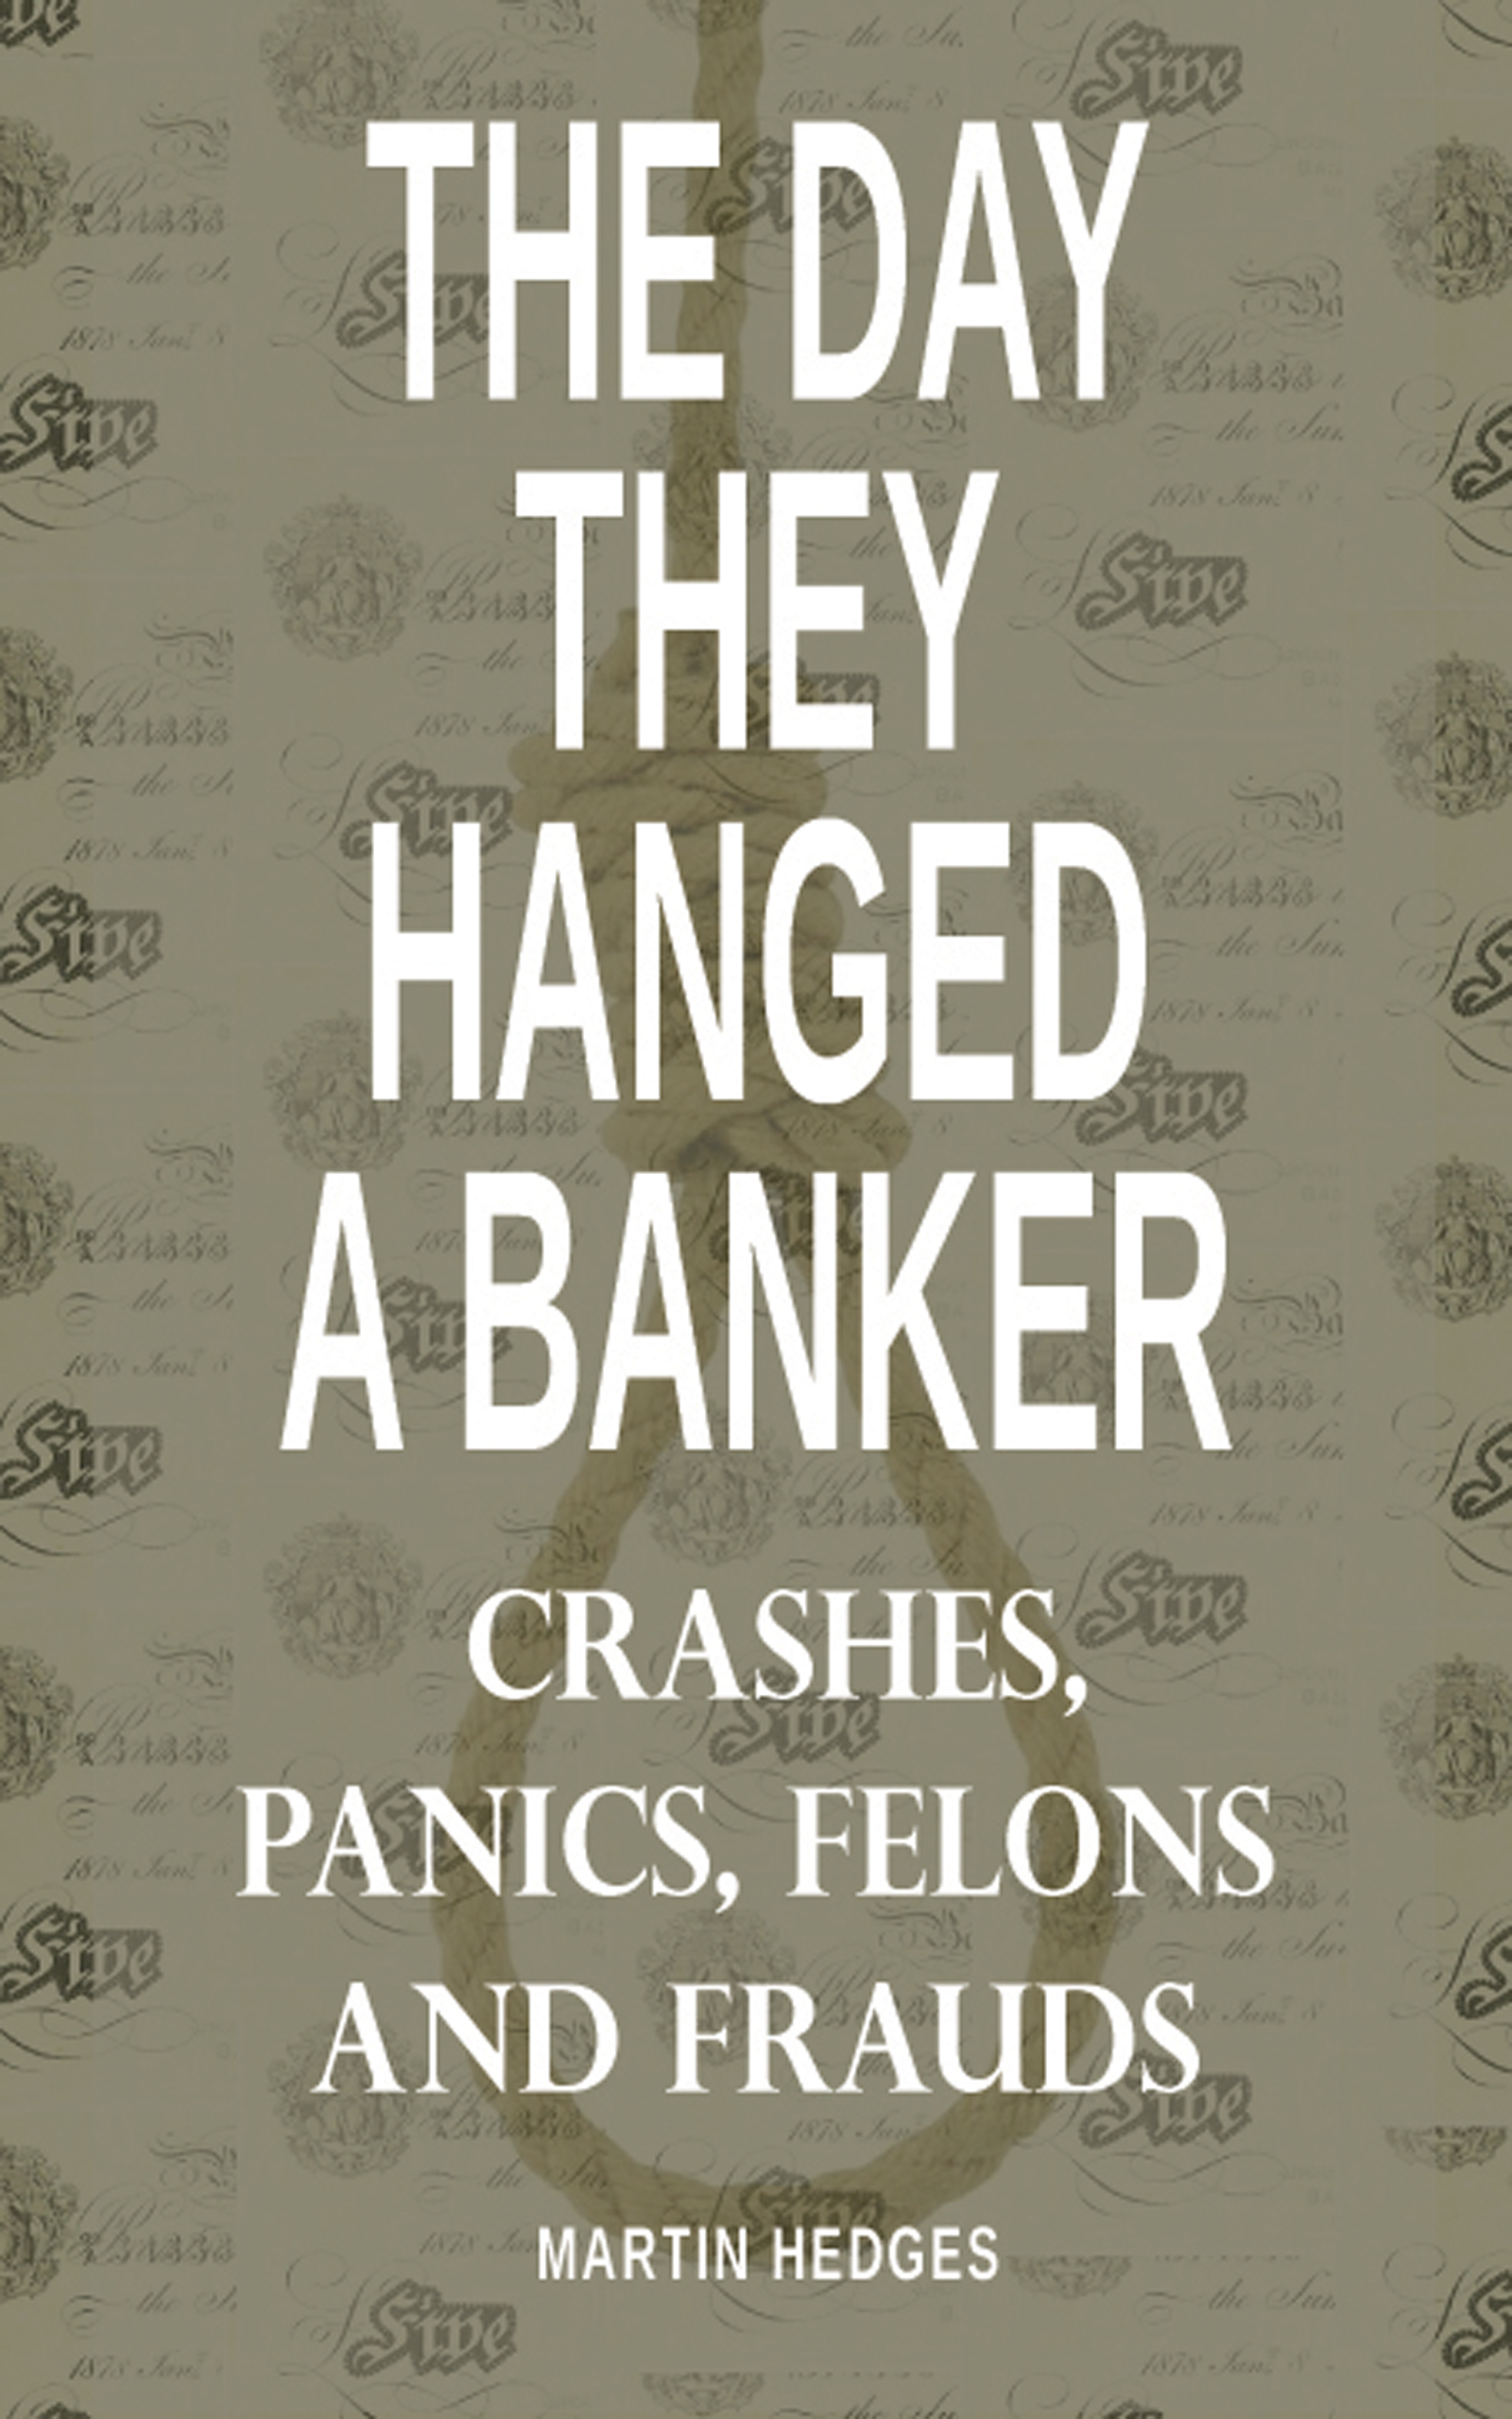 The Day They Hanged A Banker | Actonbooks